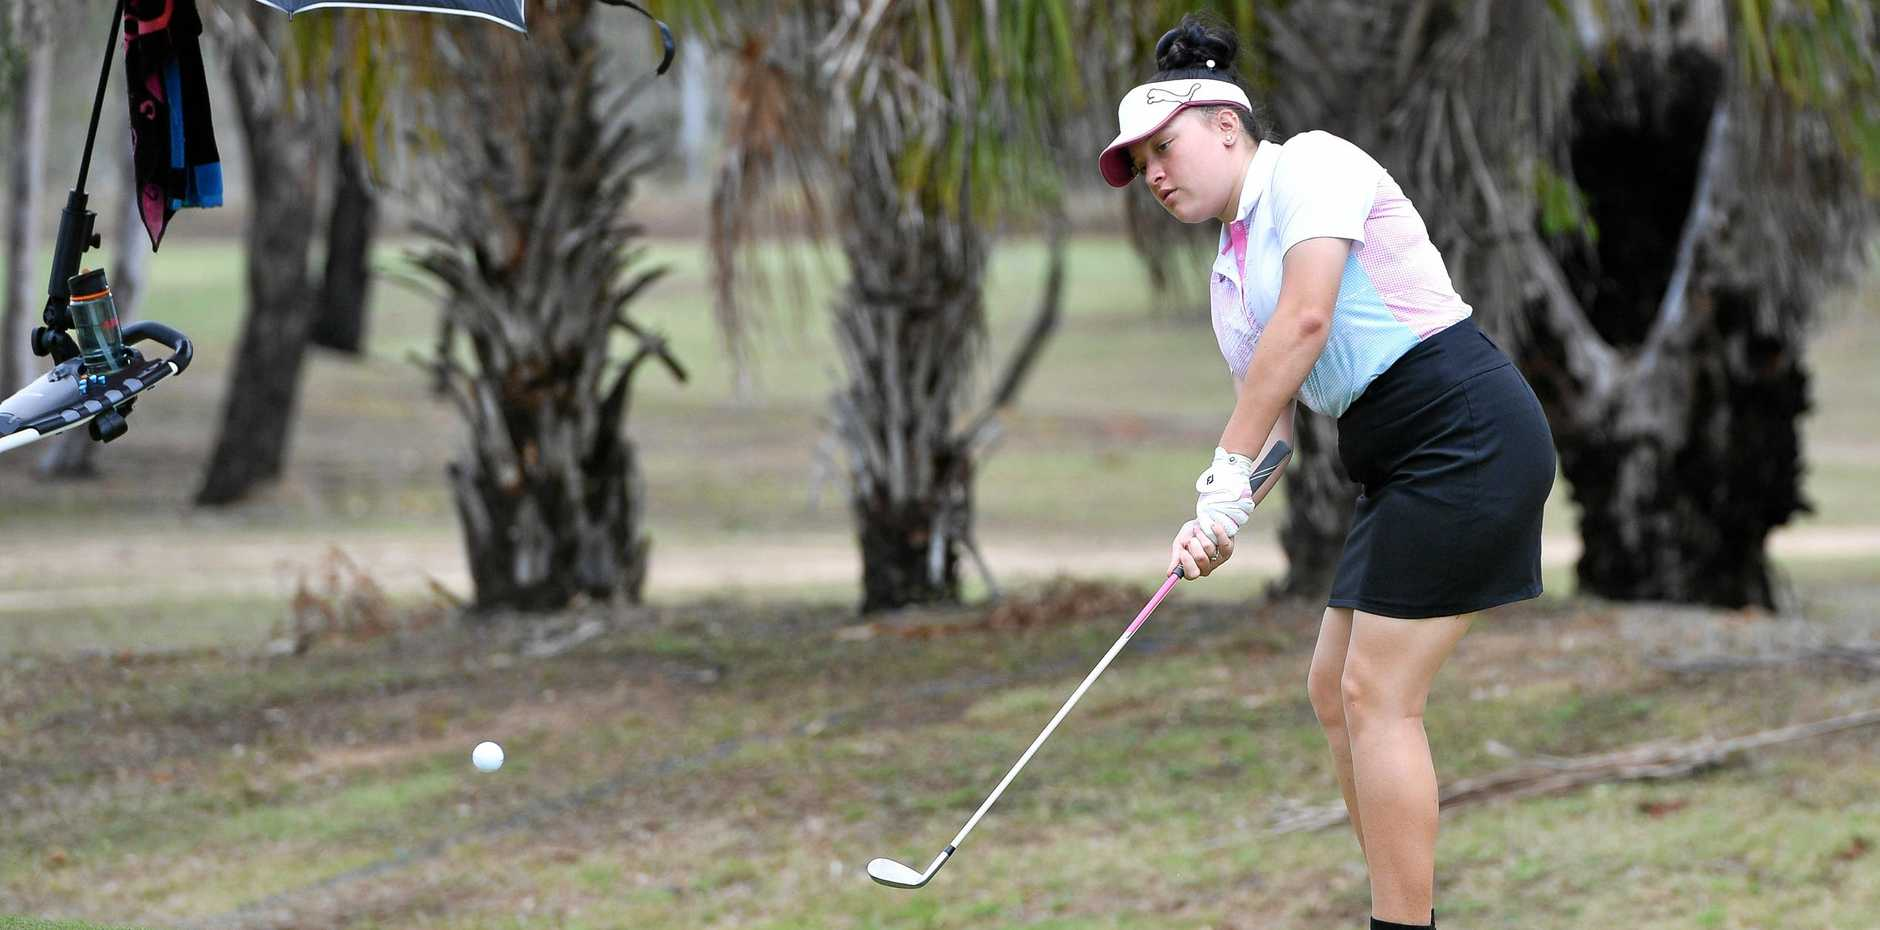 NEAT STROKE: 15-year-old Taylah Rideout plays one onto the green at the 2018 BITS Junior Golf Open.